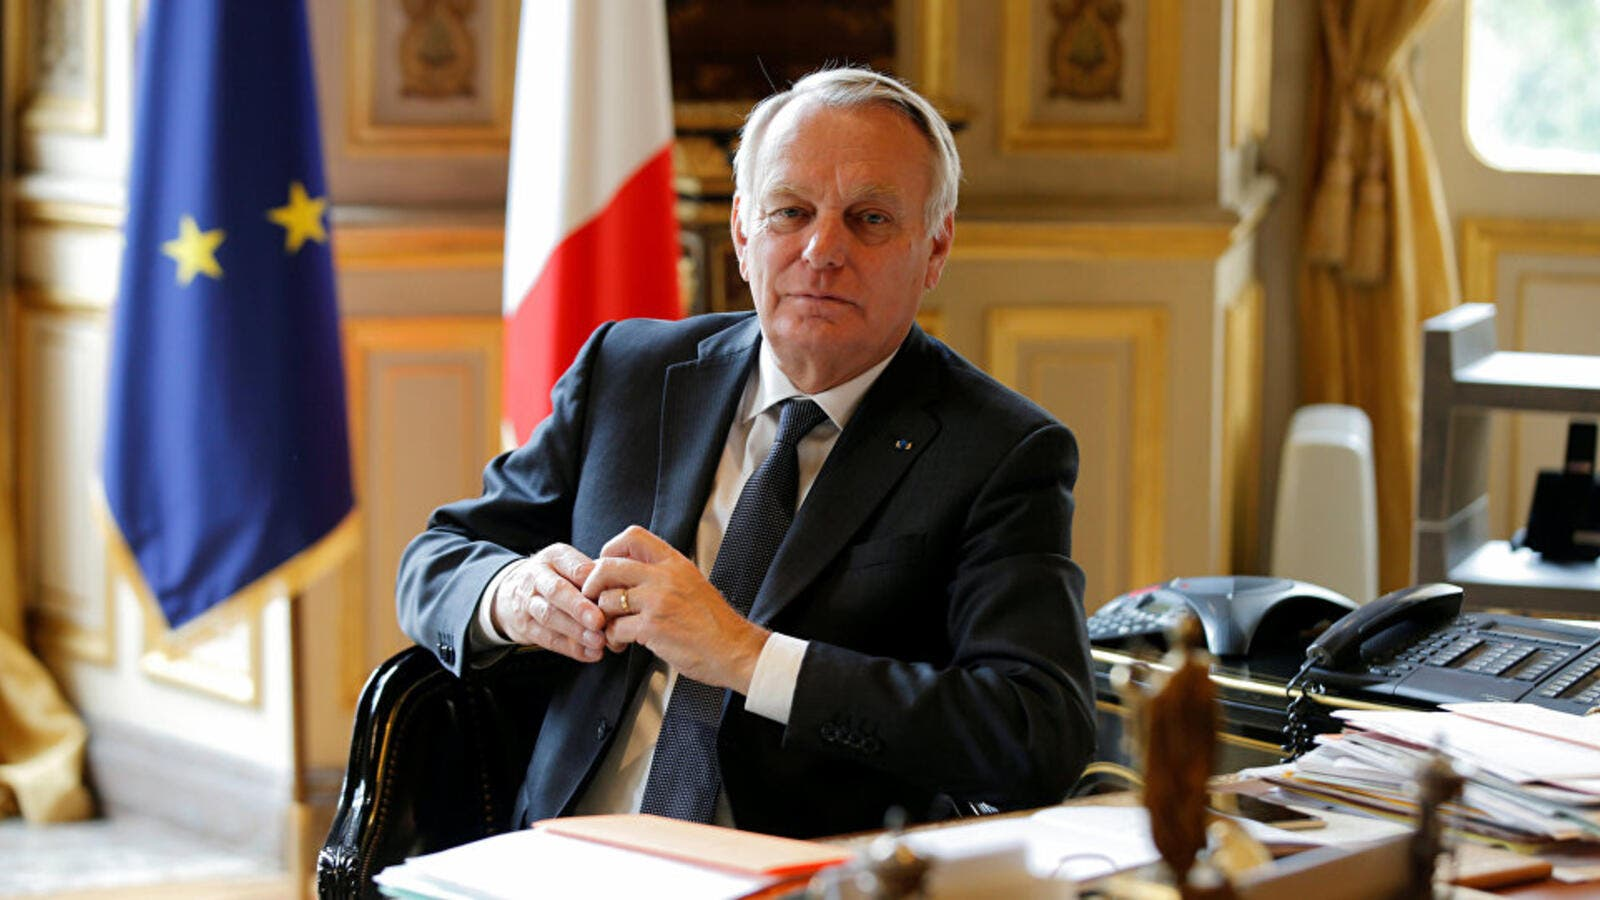 French Foreign Minister Jean-Marc Ayrault. (AFP/File)